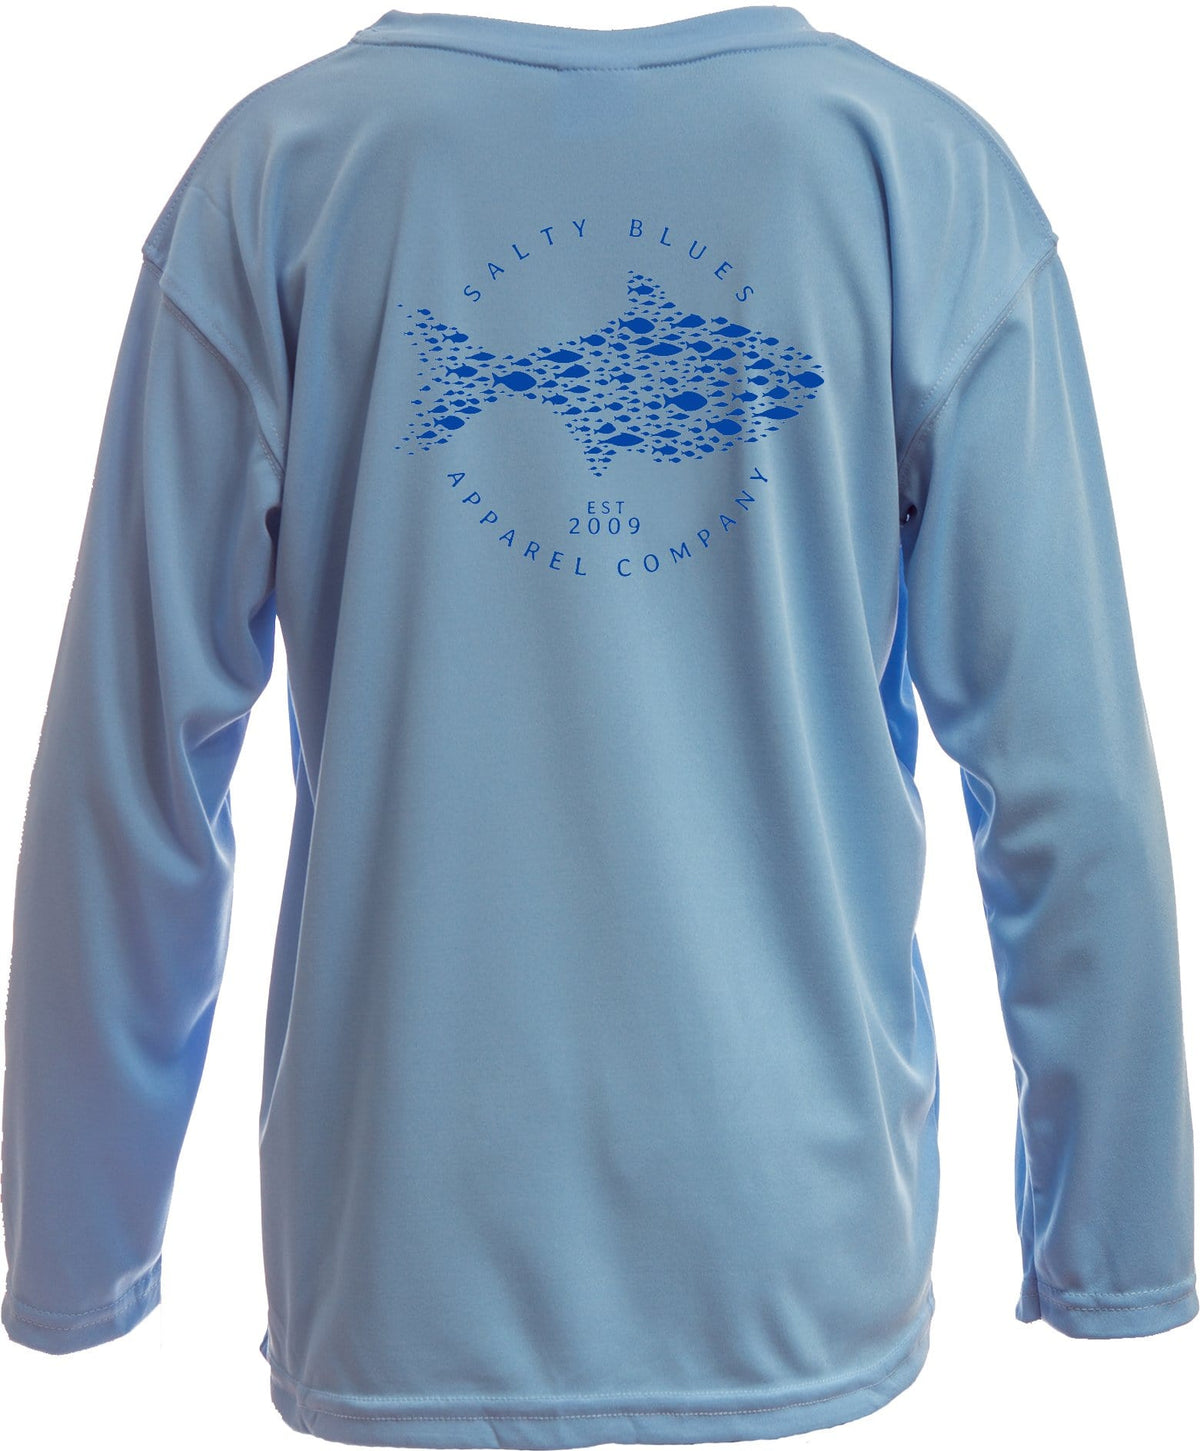 Youth Wide Net (Blue) - Youth Performance Shirt - Latitudes & Attitudes LLC